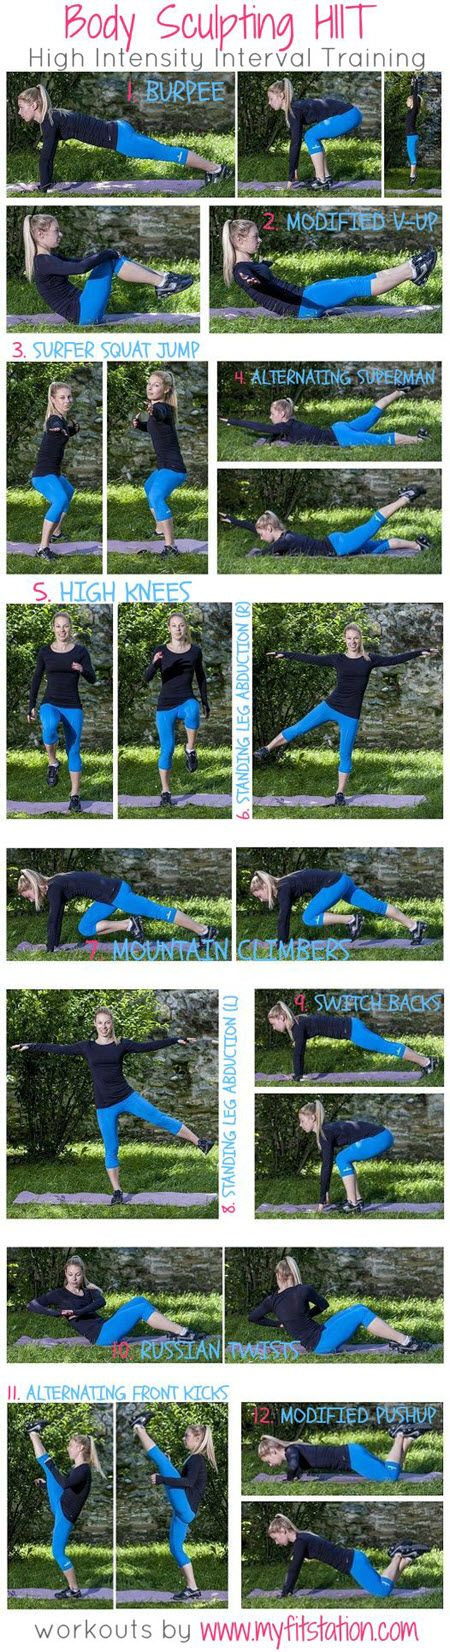 Are you considering trying HIIT workouts for weight loss? Many nurses shy away from physical exercise because a nurse's work is already physically draining. Still, real exercise powers you up…